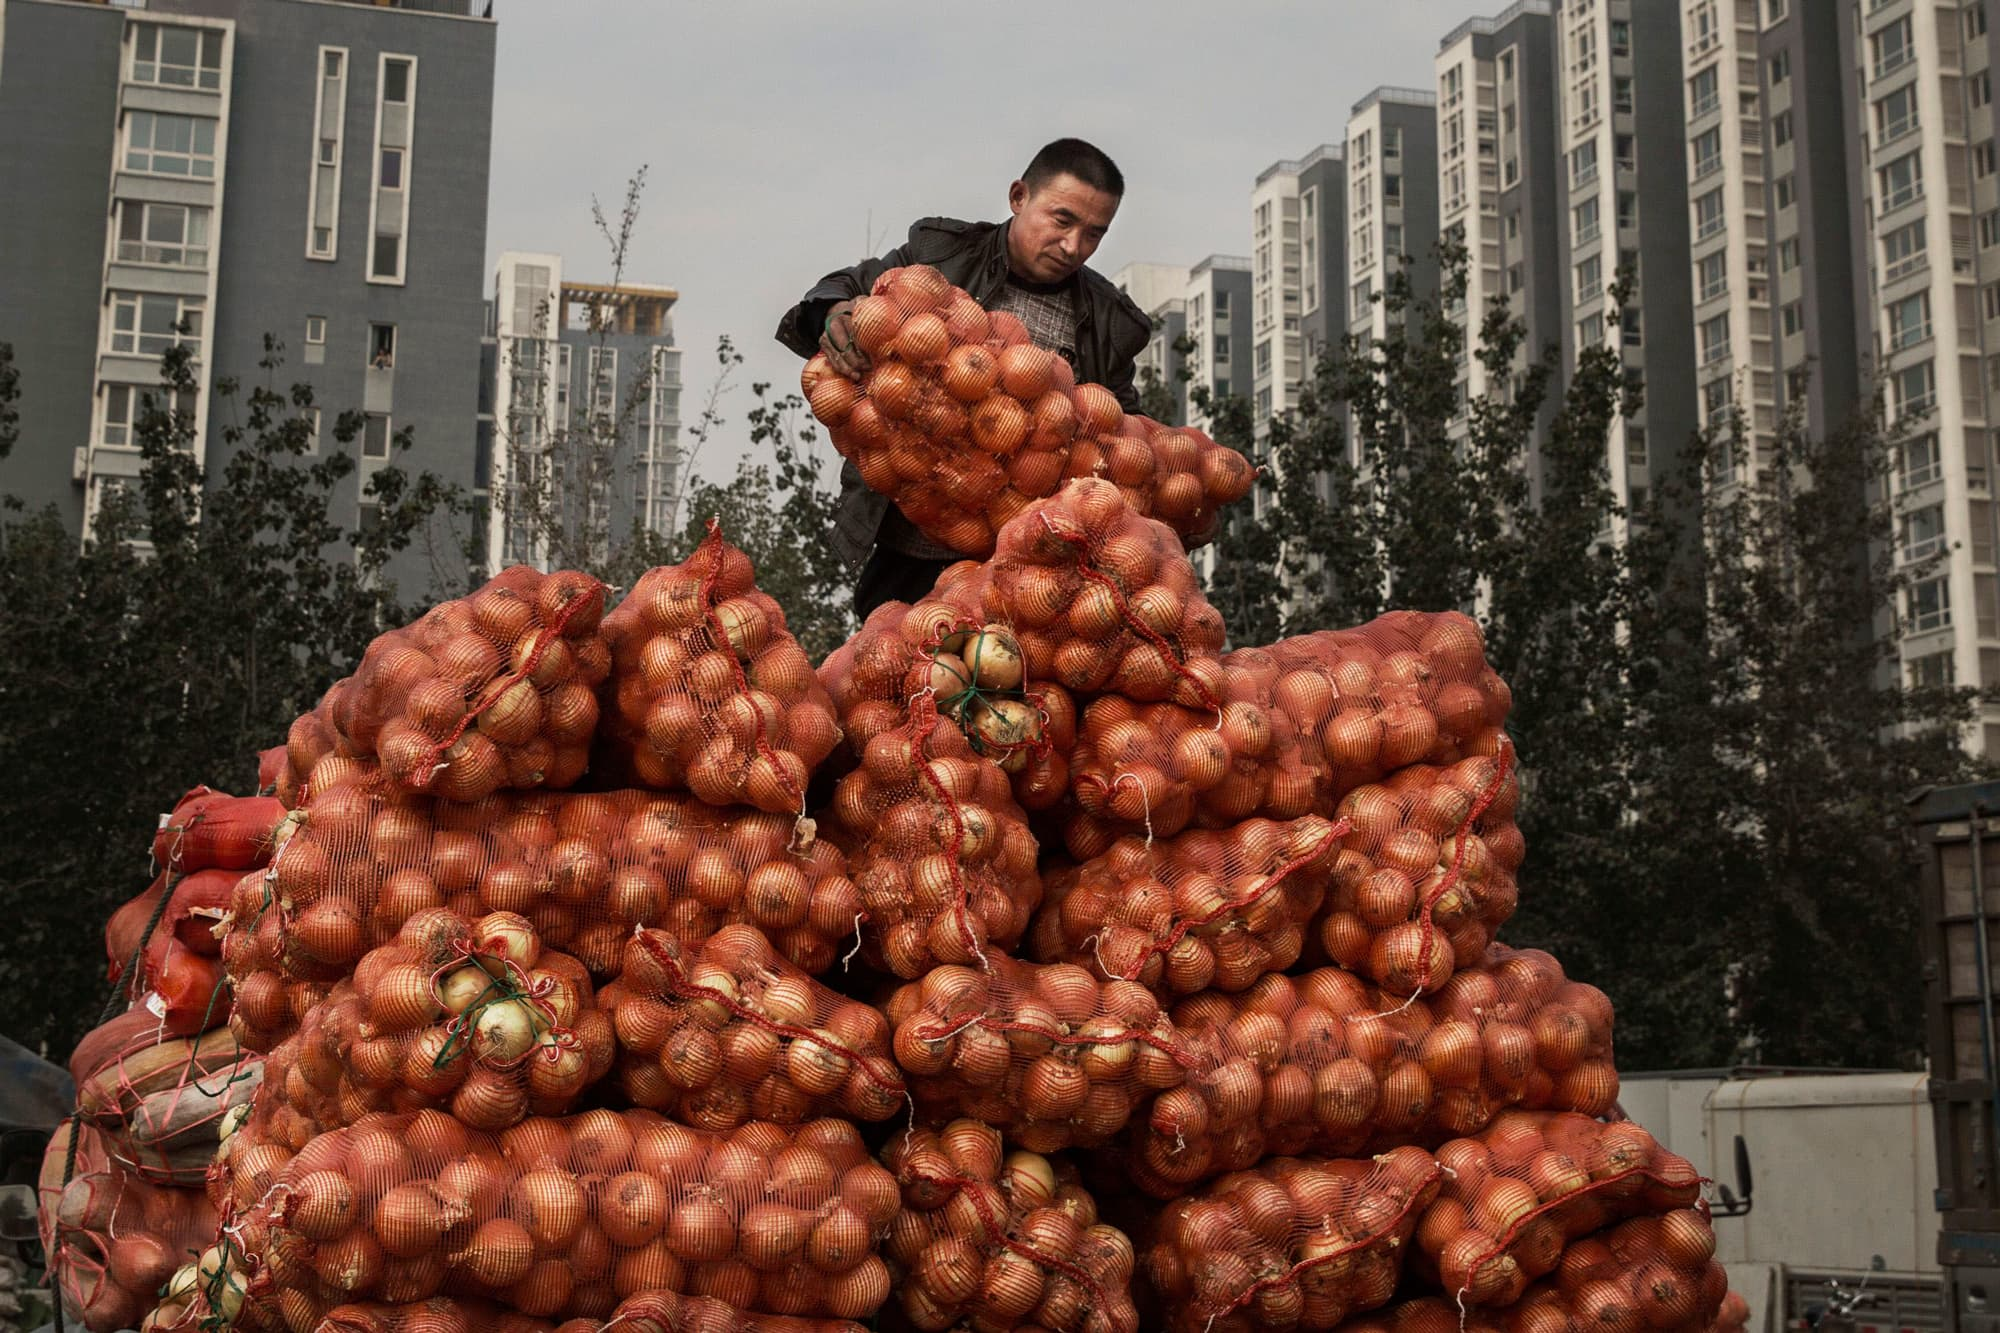 A Chinese vendor unloads onions at a local food market in Beijing.